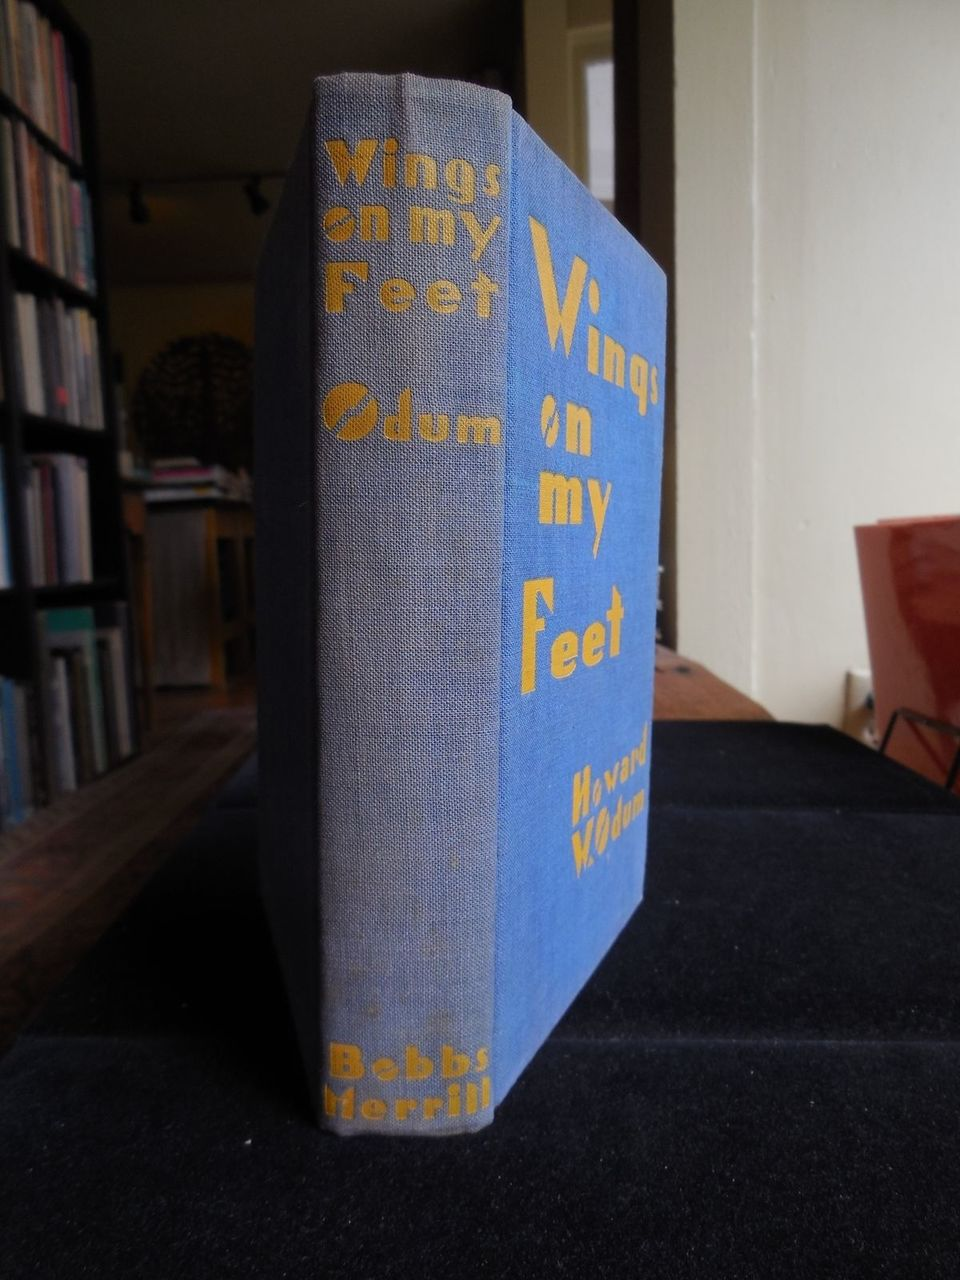 WINGS ON MY FEET, BLACK ULYSSES, by Howard W Odum -1929 [SIGNED 1st Ed ]